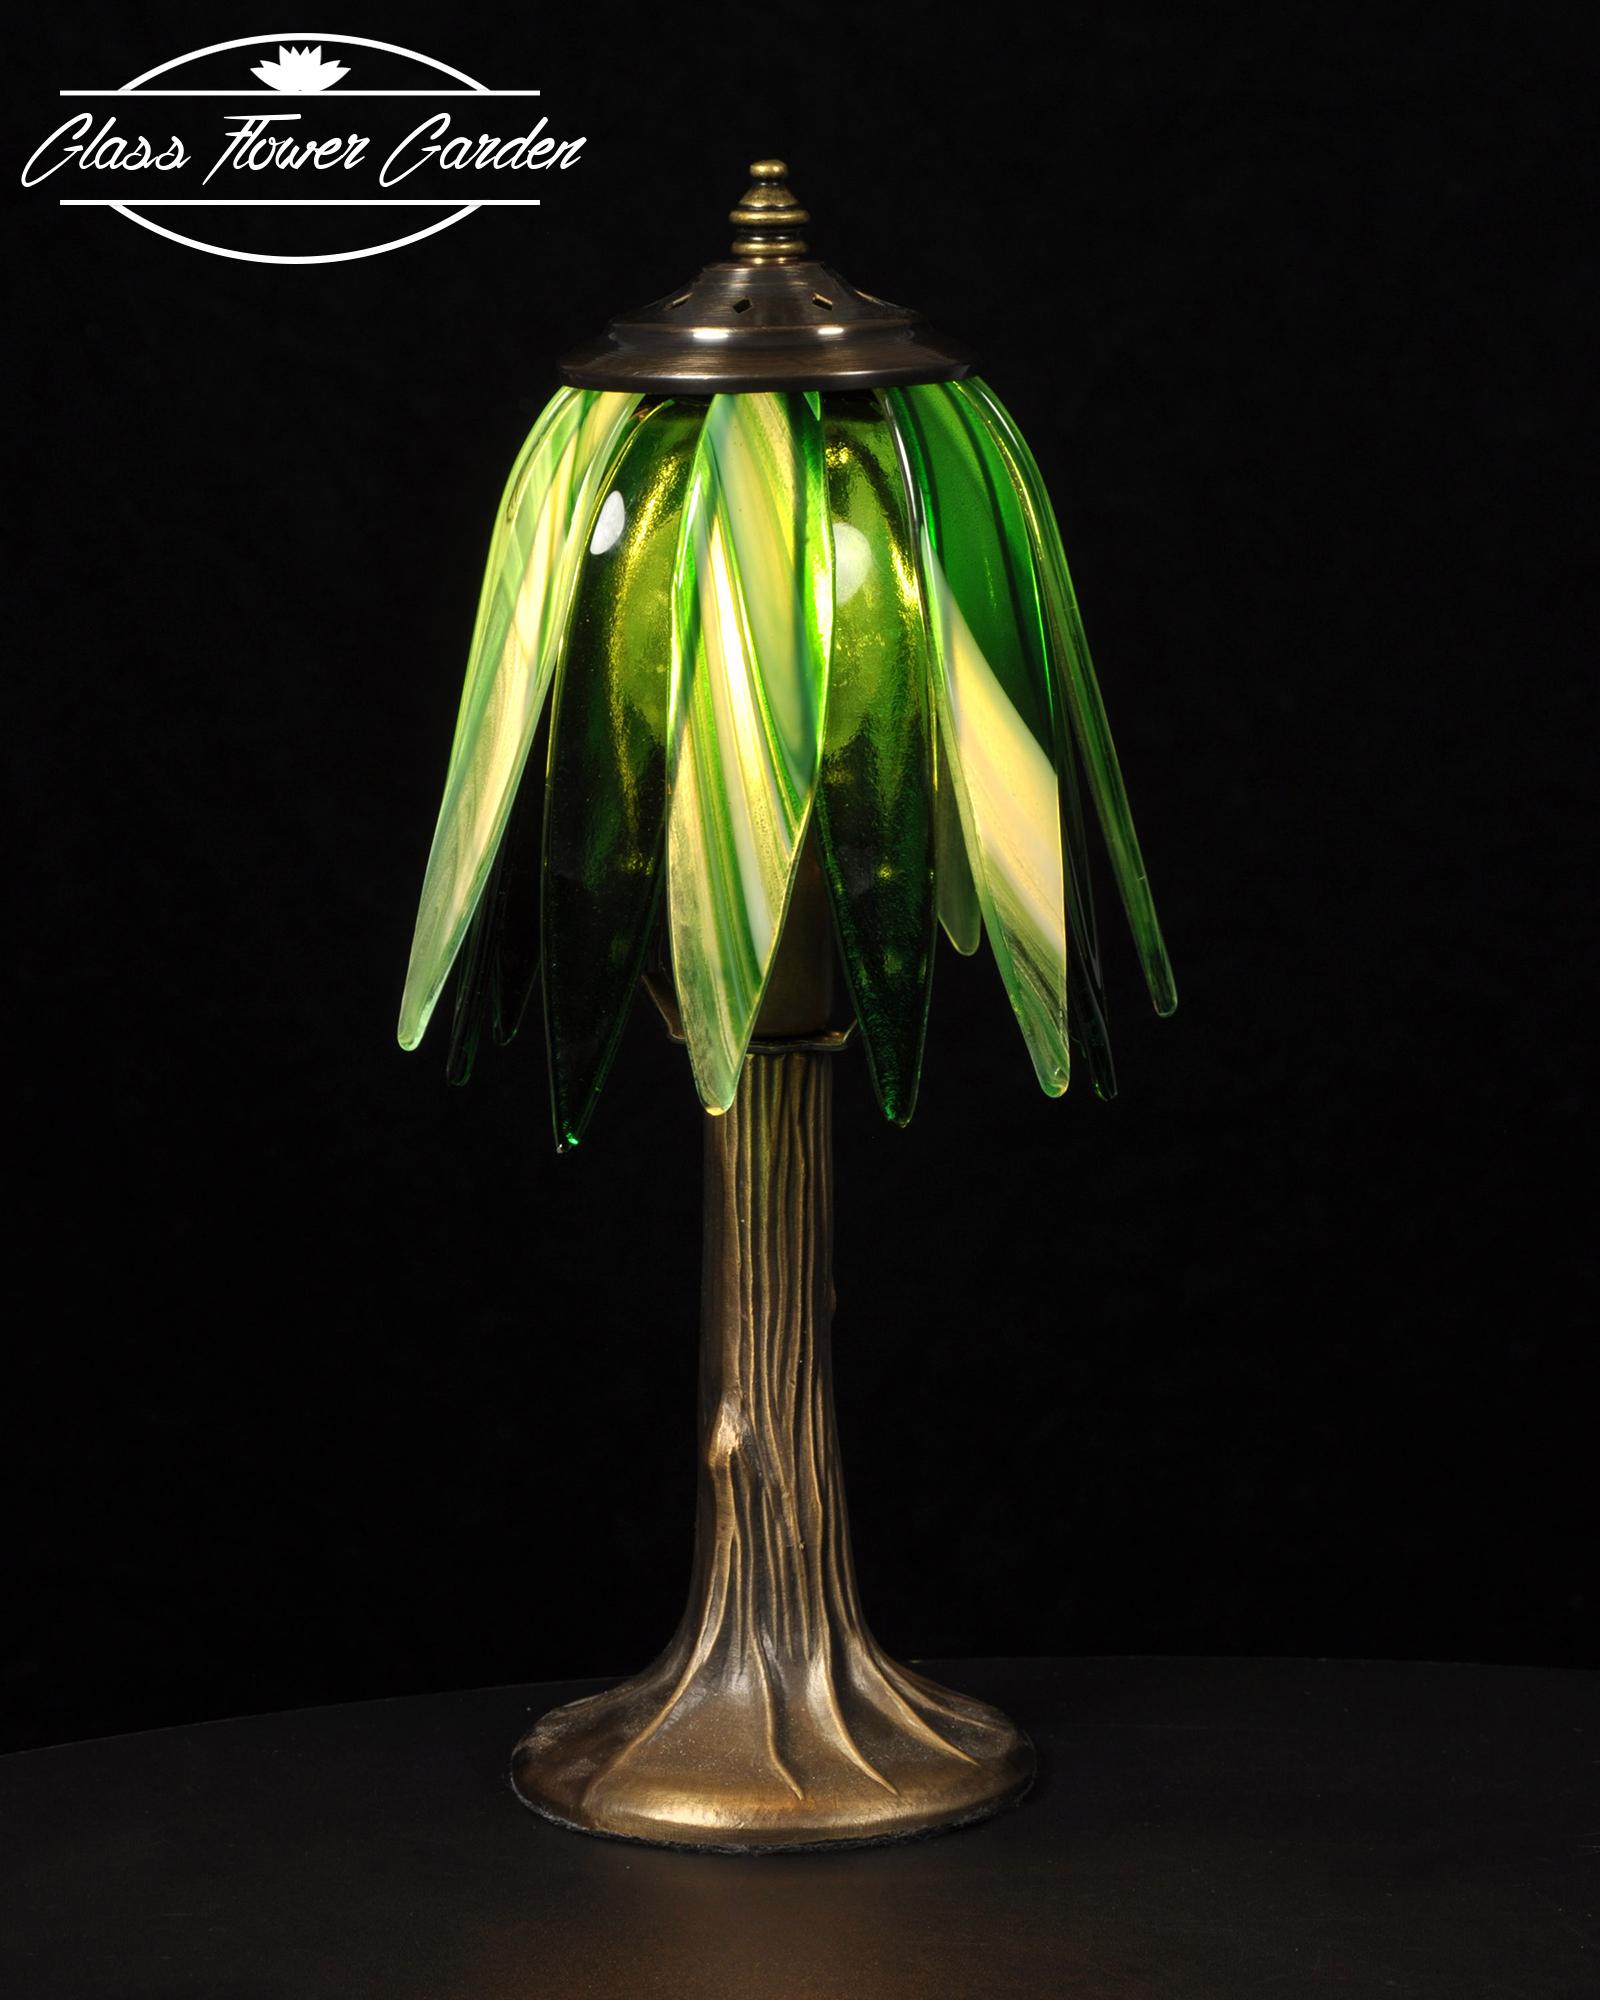 Going green glass shaded lamp glass flower garden online store going green glass shaded lamp mozeypictures Gallery